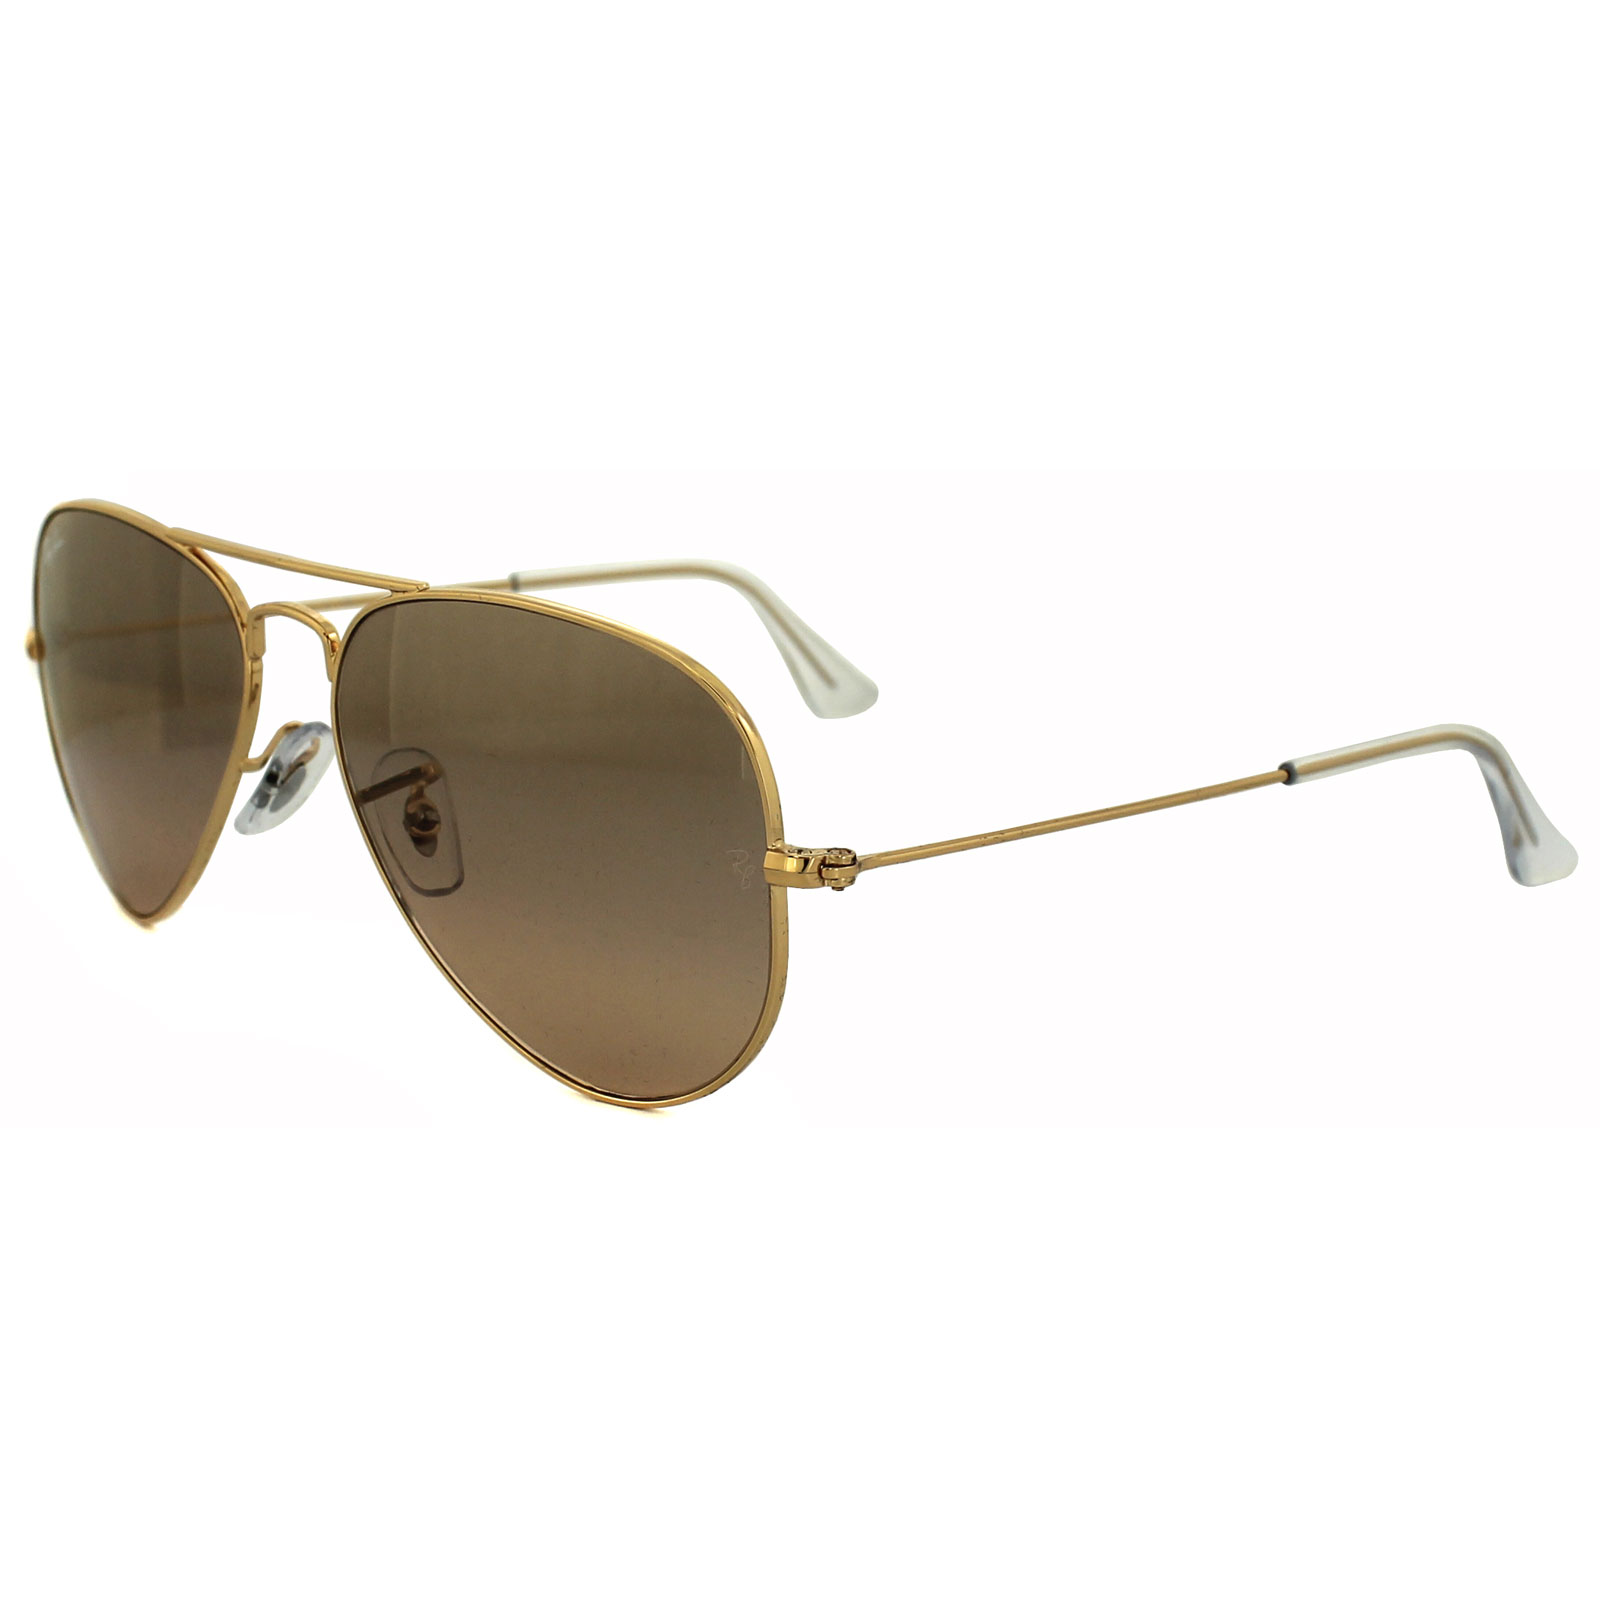 ray ban sonnenbrille aviator 3025 001 3e gold pink silver. Black Bedroom Furniture Sets. Home Design Ideas